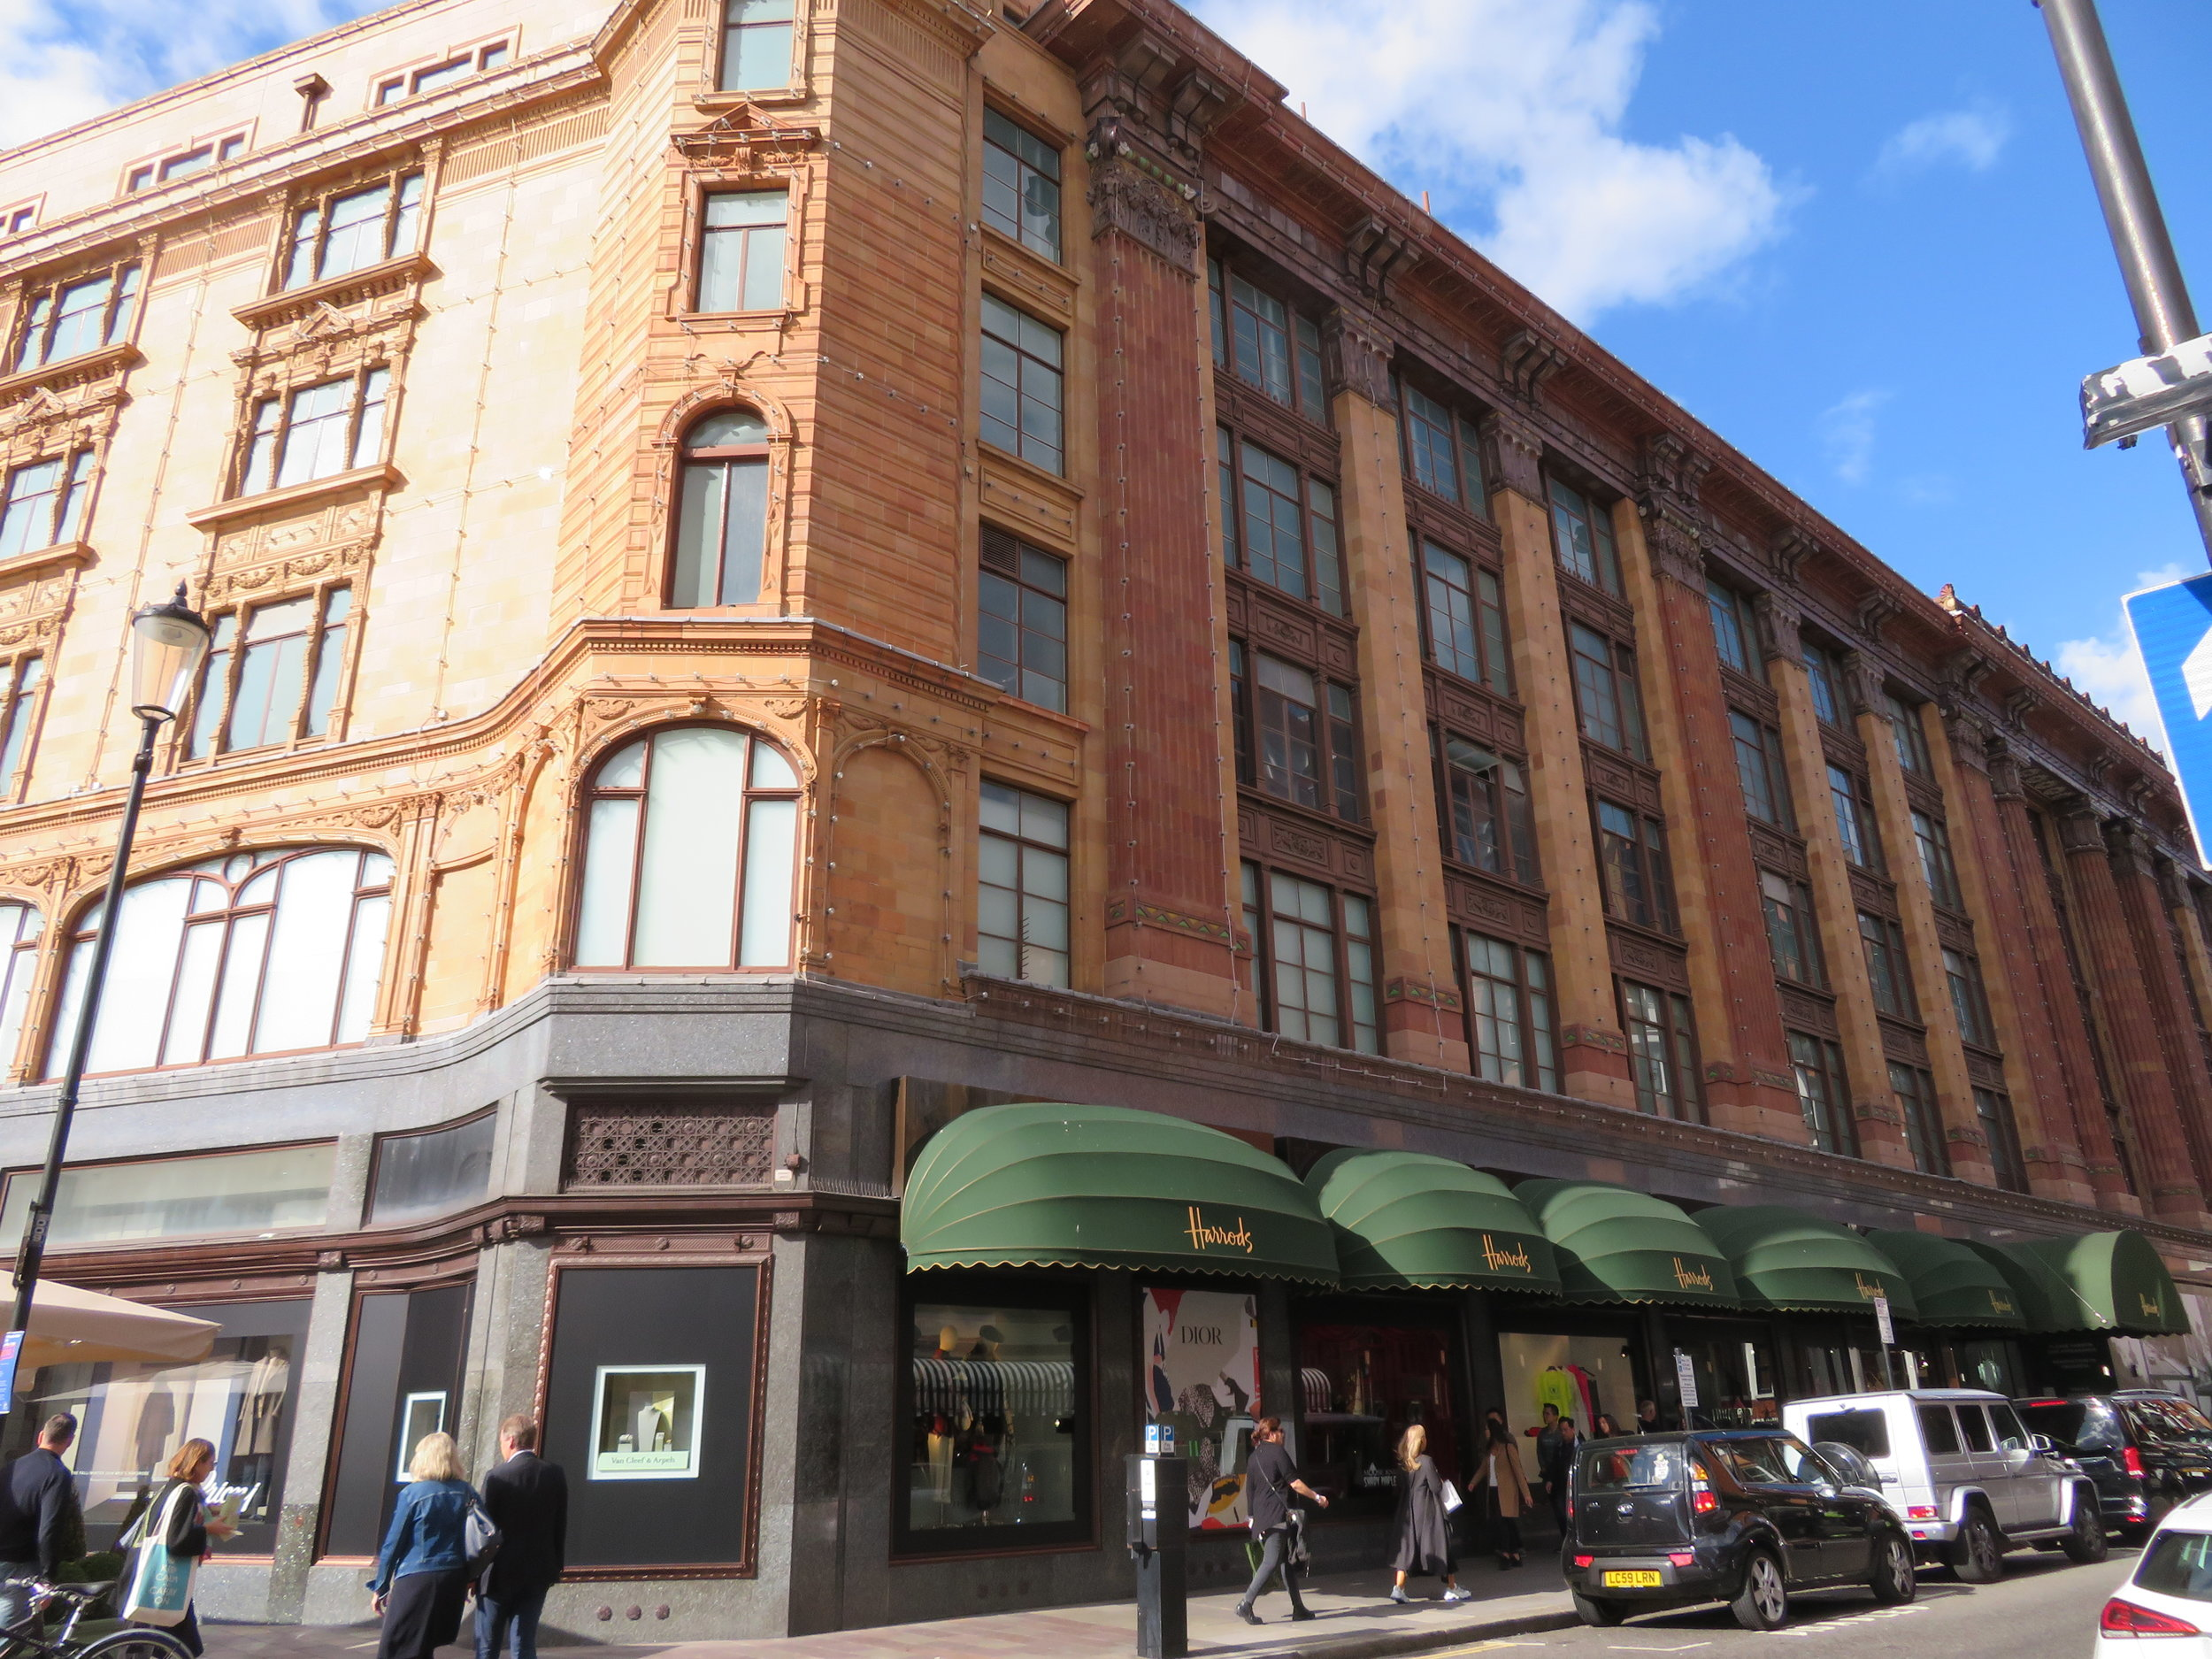 Harrods … it's absolutely ginormous!